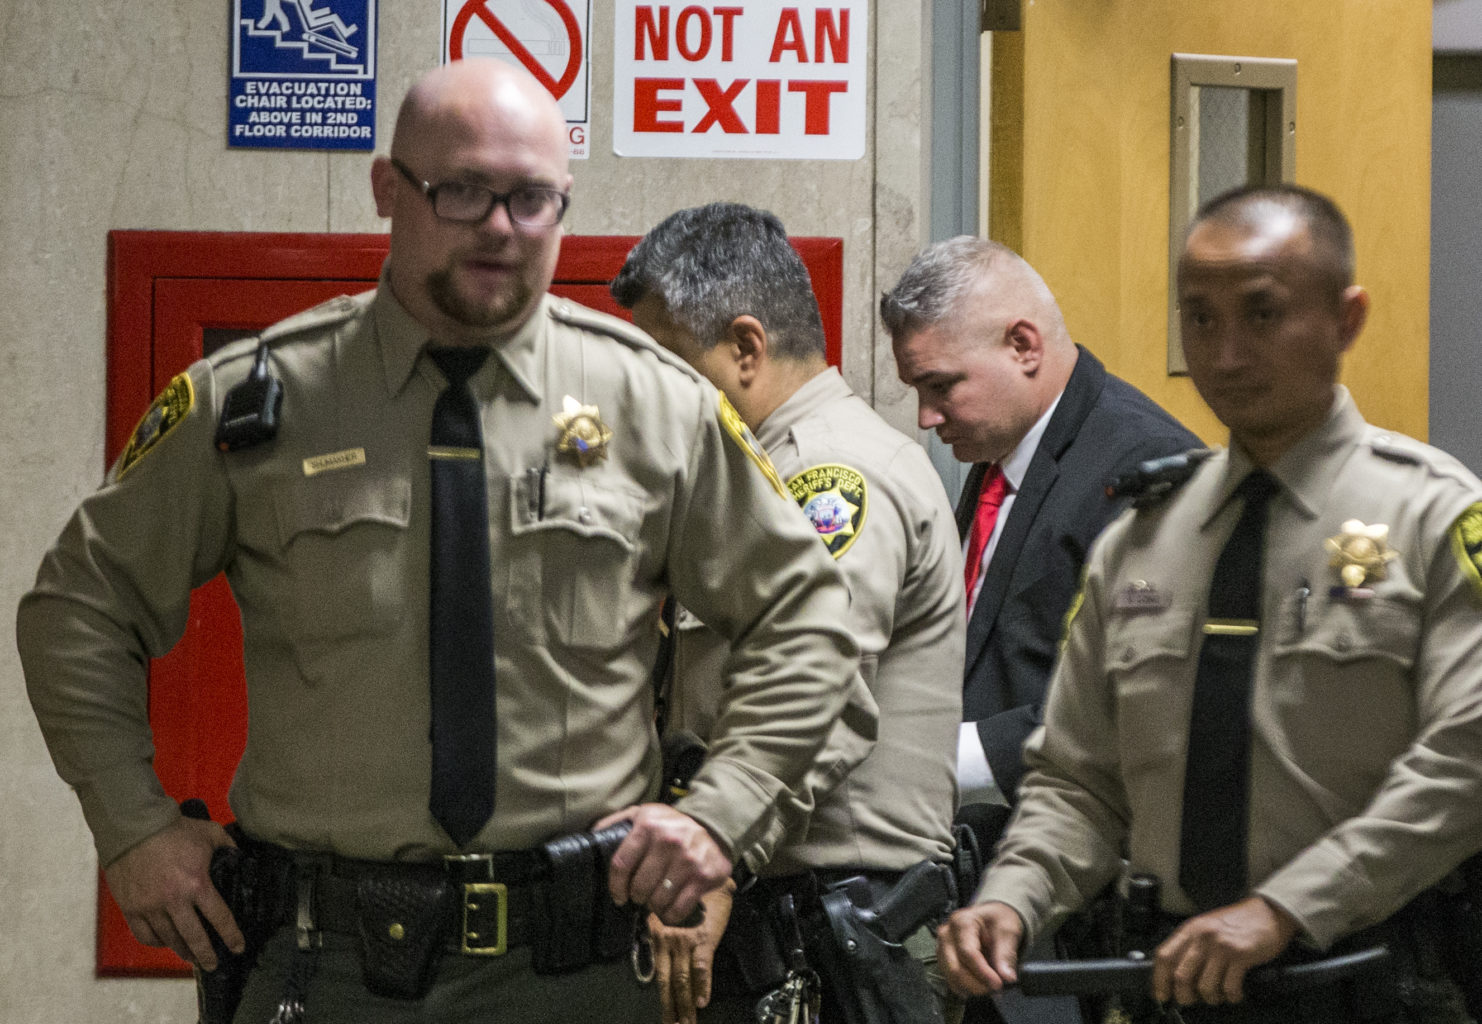 Bureau of Land Management Ranger John Woychowski is surrounded by sheriff's deputies as he enters the courtroom during the fourth day of trial in the case against Jose Ines Garcia Zarate for the 2015 killing of 32-year-old Kathryn Steinle at the Hall of Justice in San Francisco, Calif. Thursday, October 26, 2017. (Jessica Christian/S.F. Examiner)